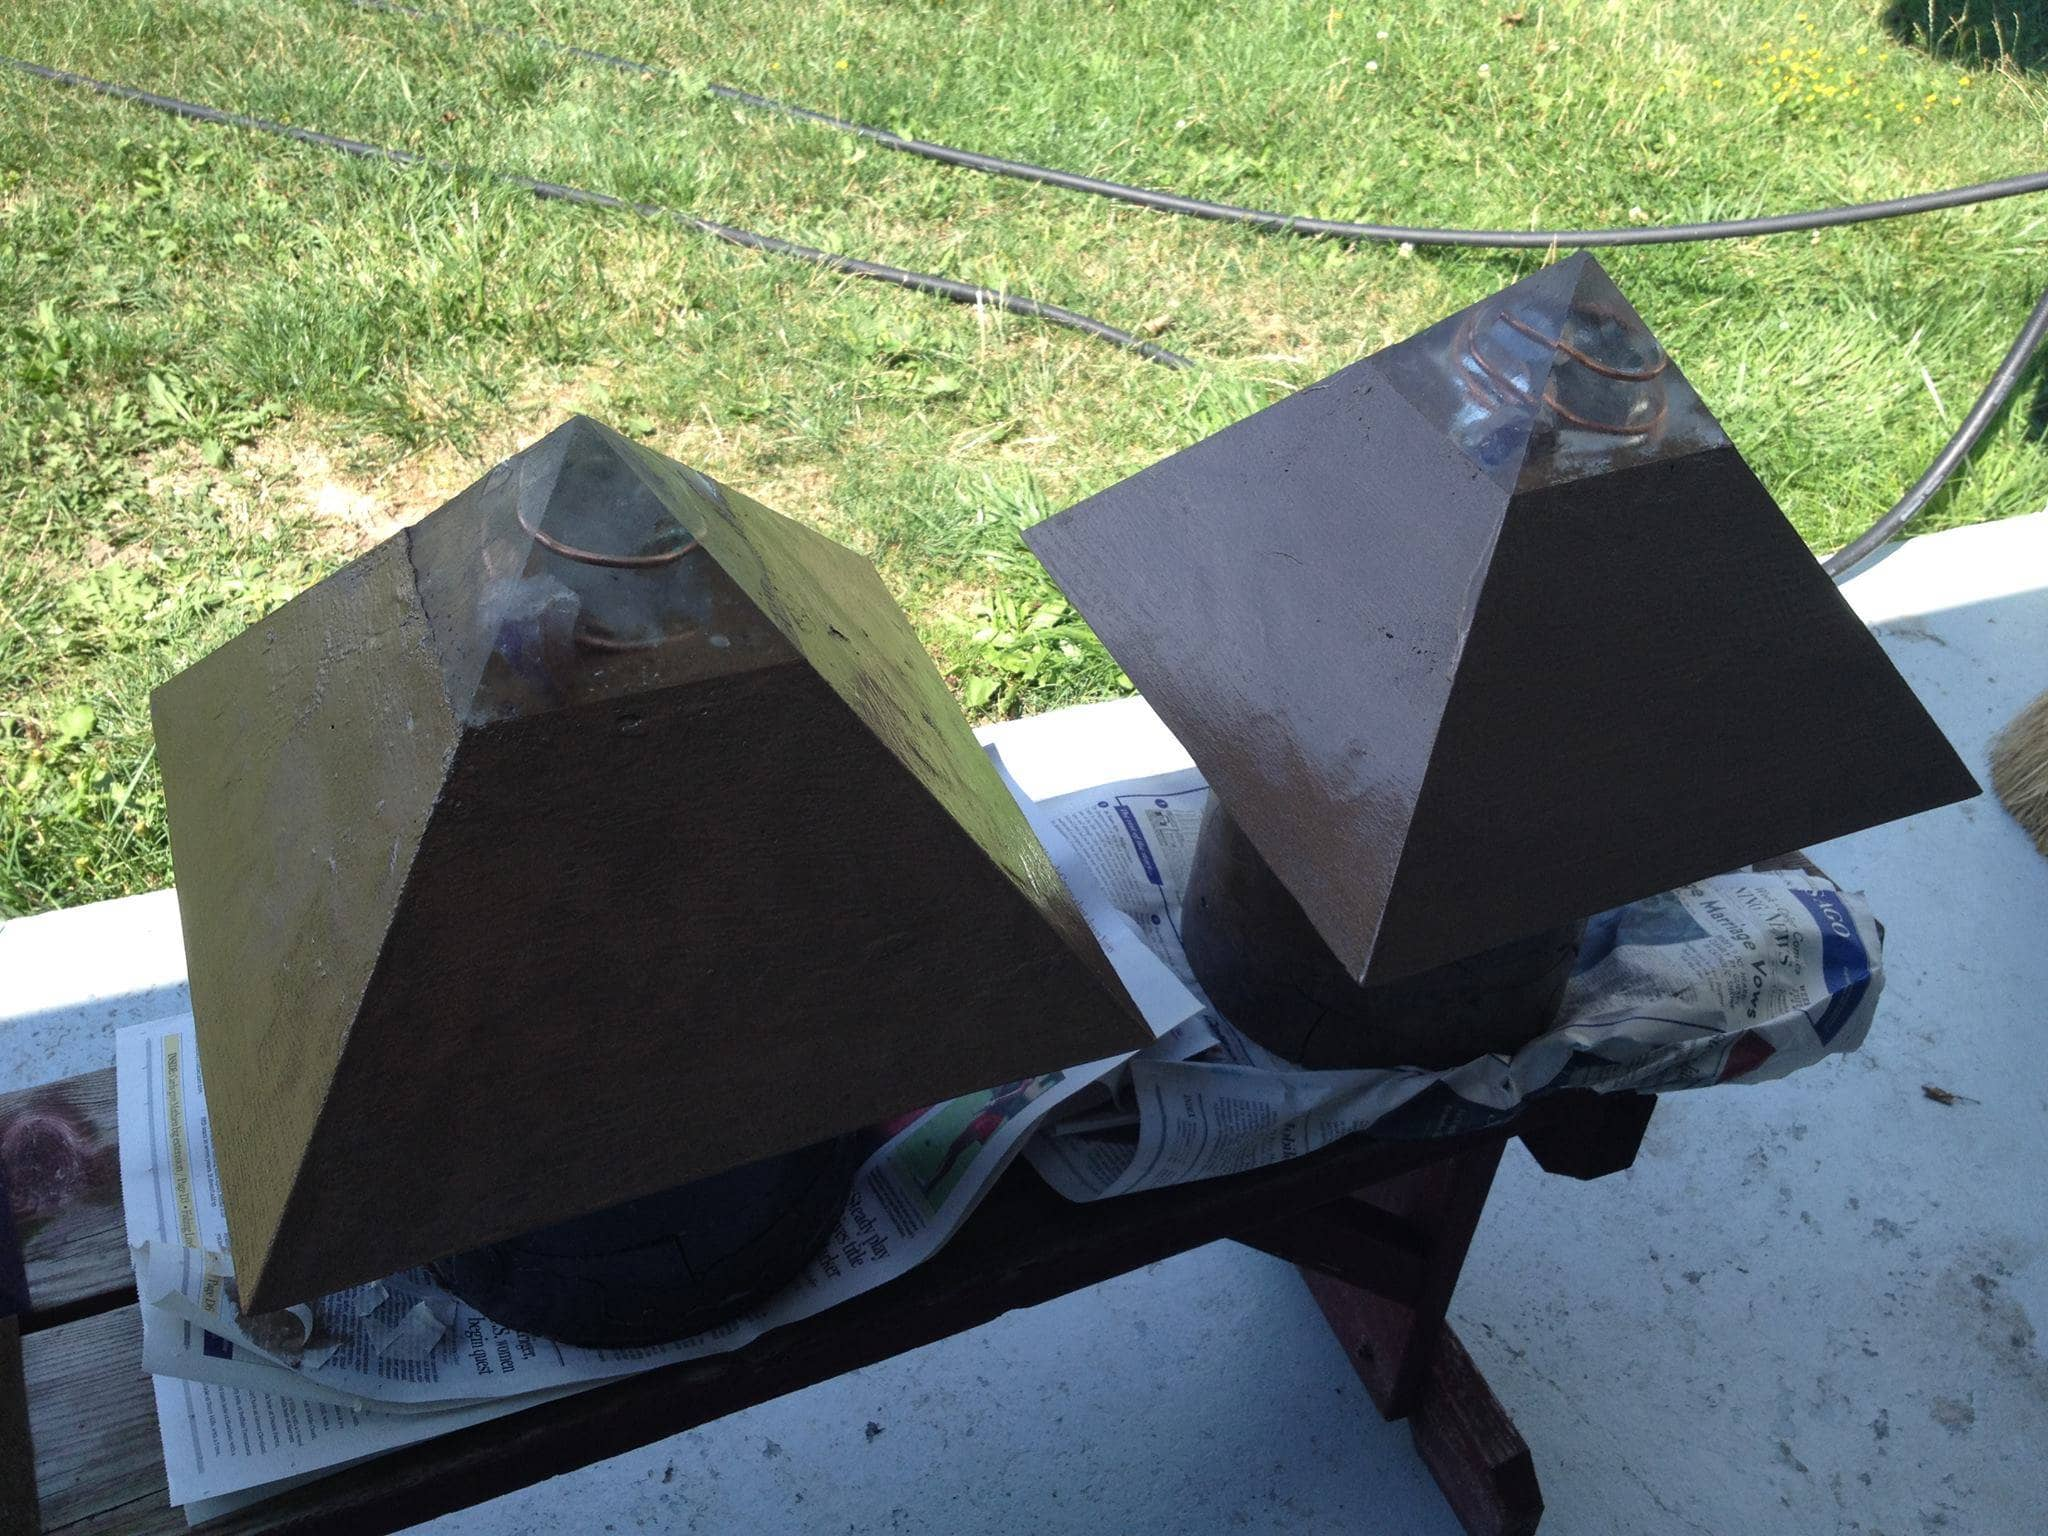 stainless steel sheet metal pyramid finished